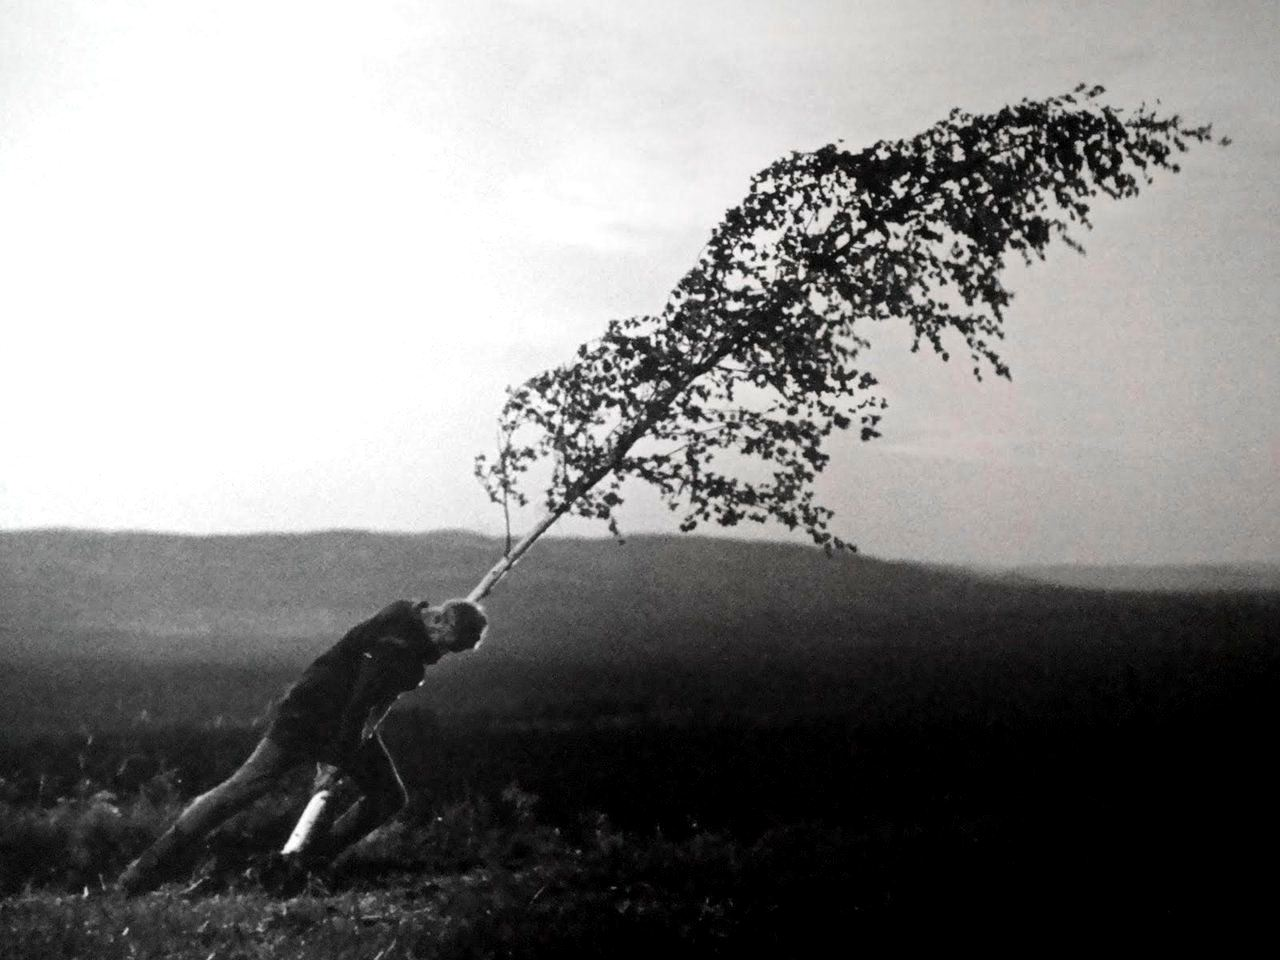 Max Von Sydow wrestles with a sapling in The Virgin Spring (1959)